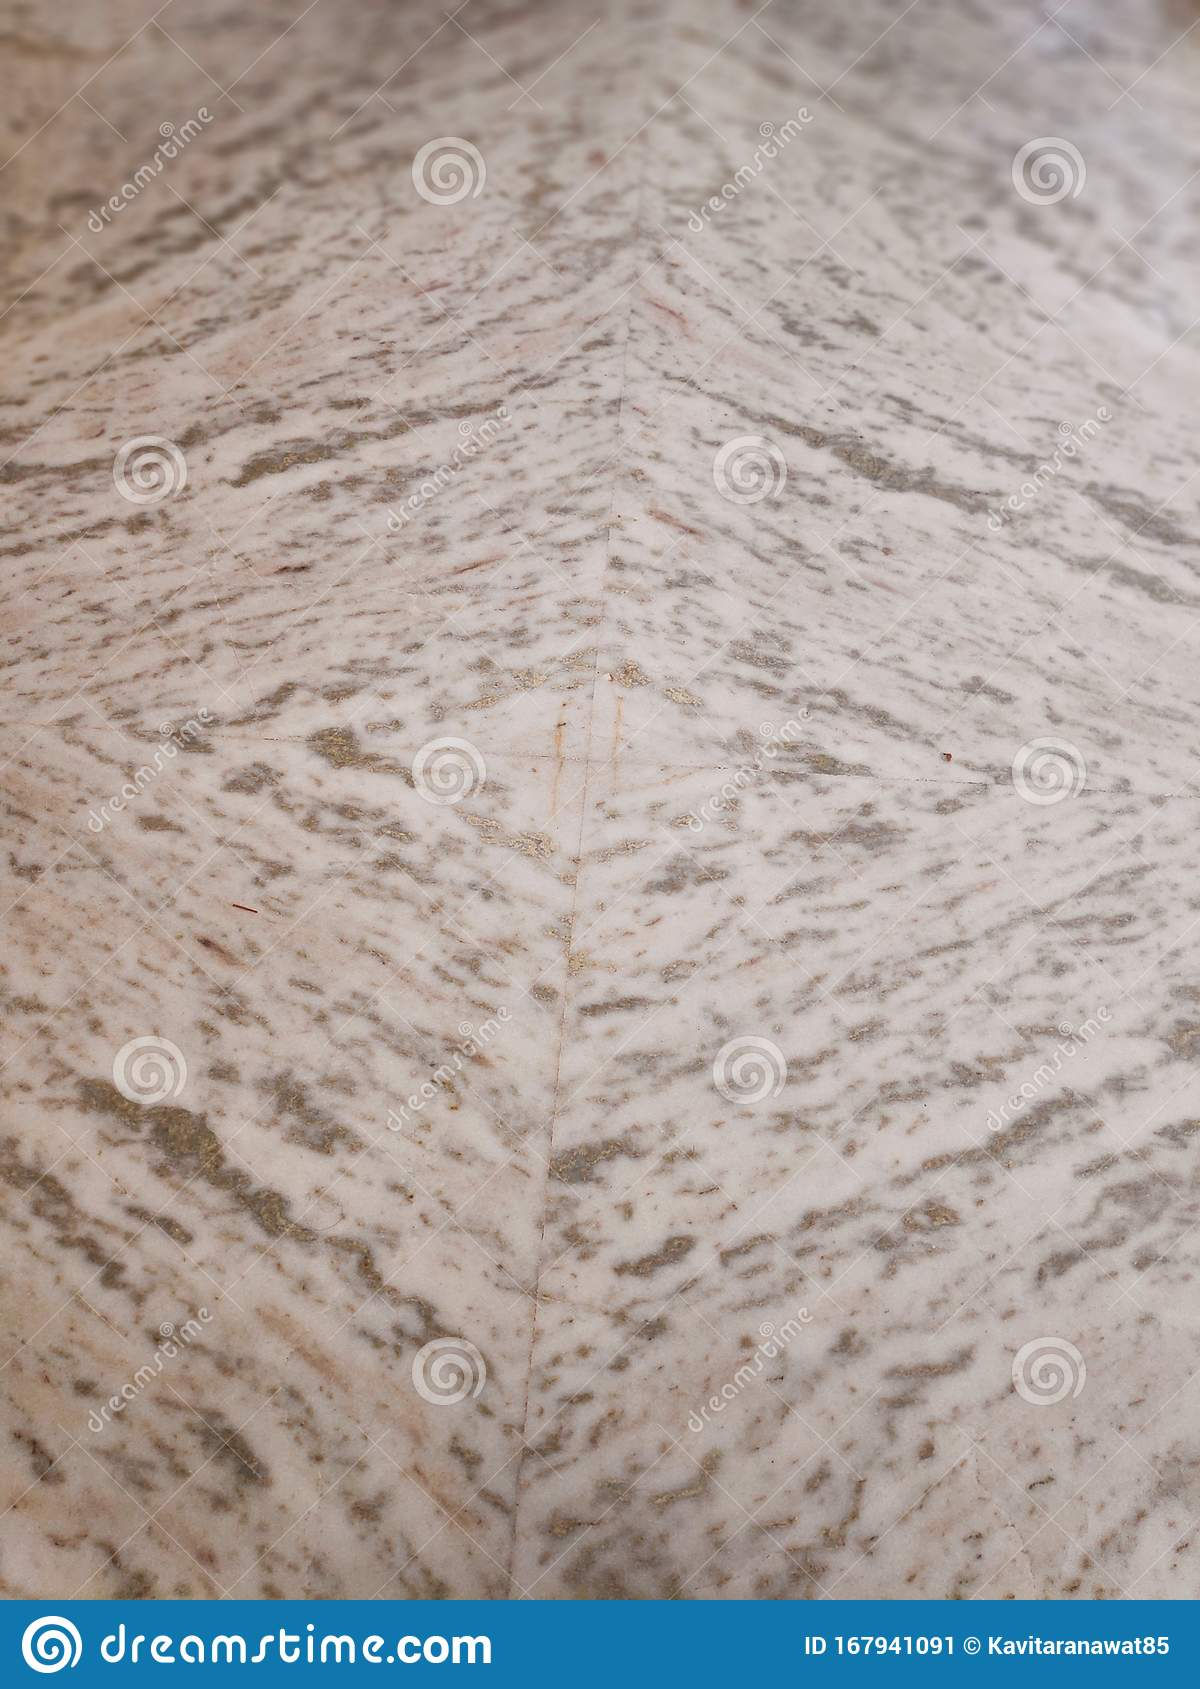 Empty Room With Marble Floor Stock Image Image Of Design Background 167941091